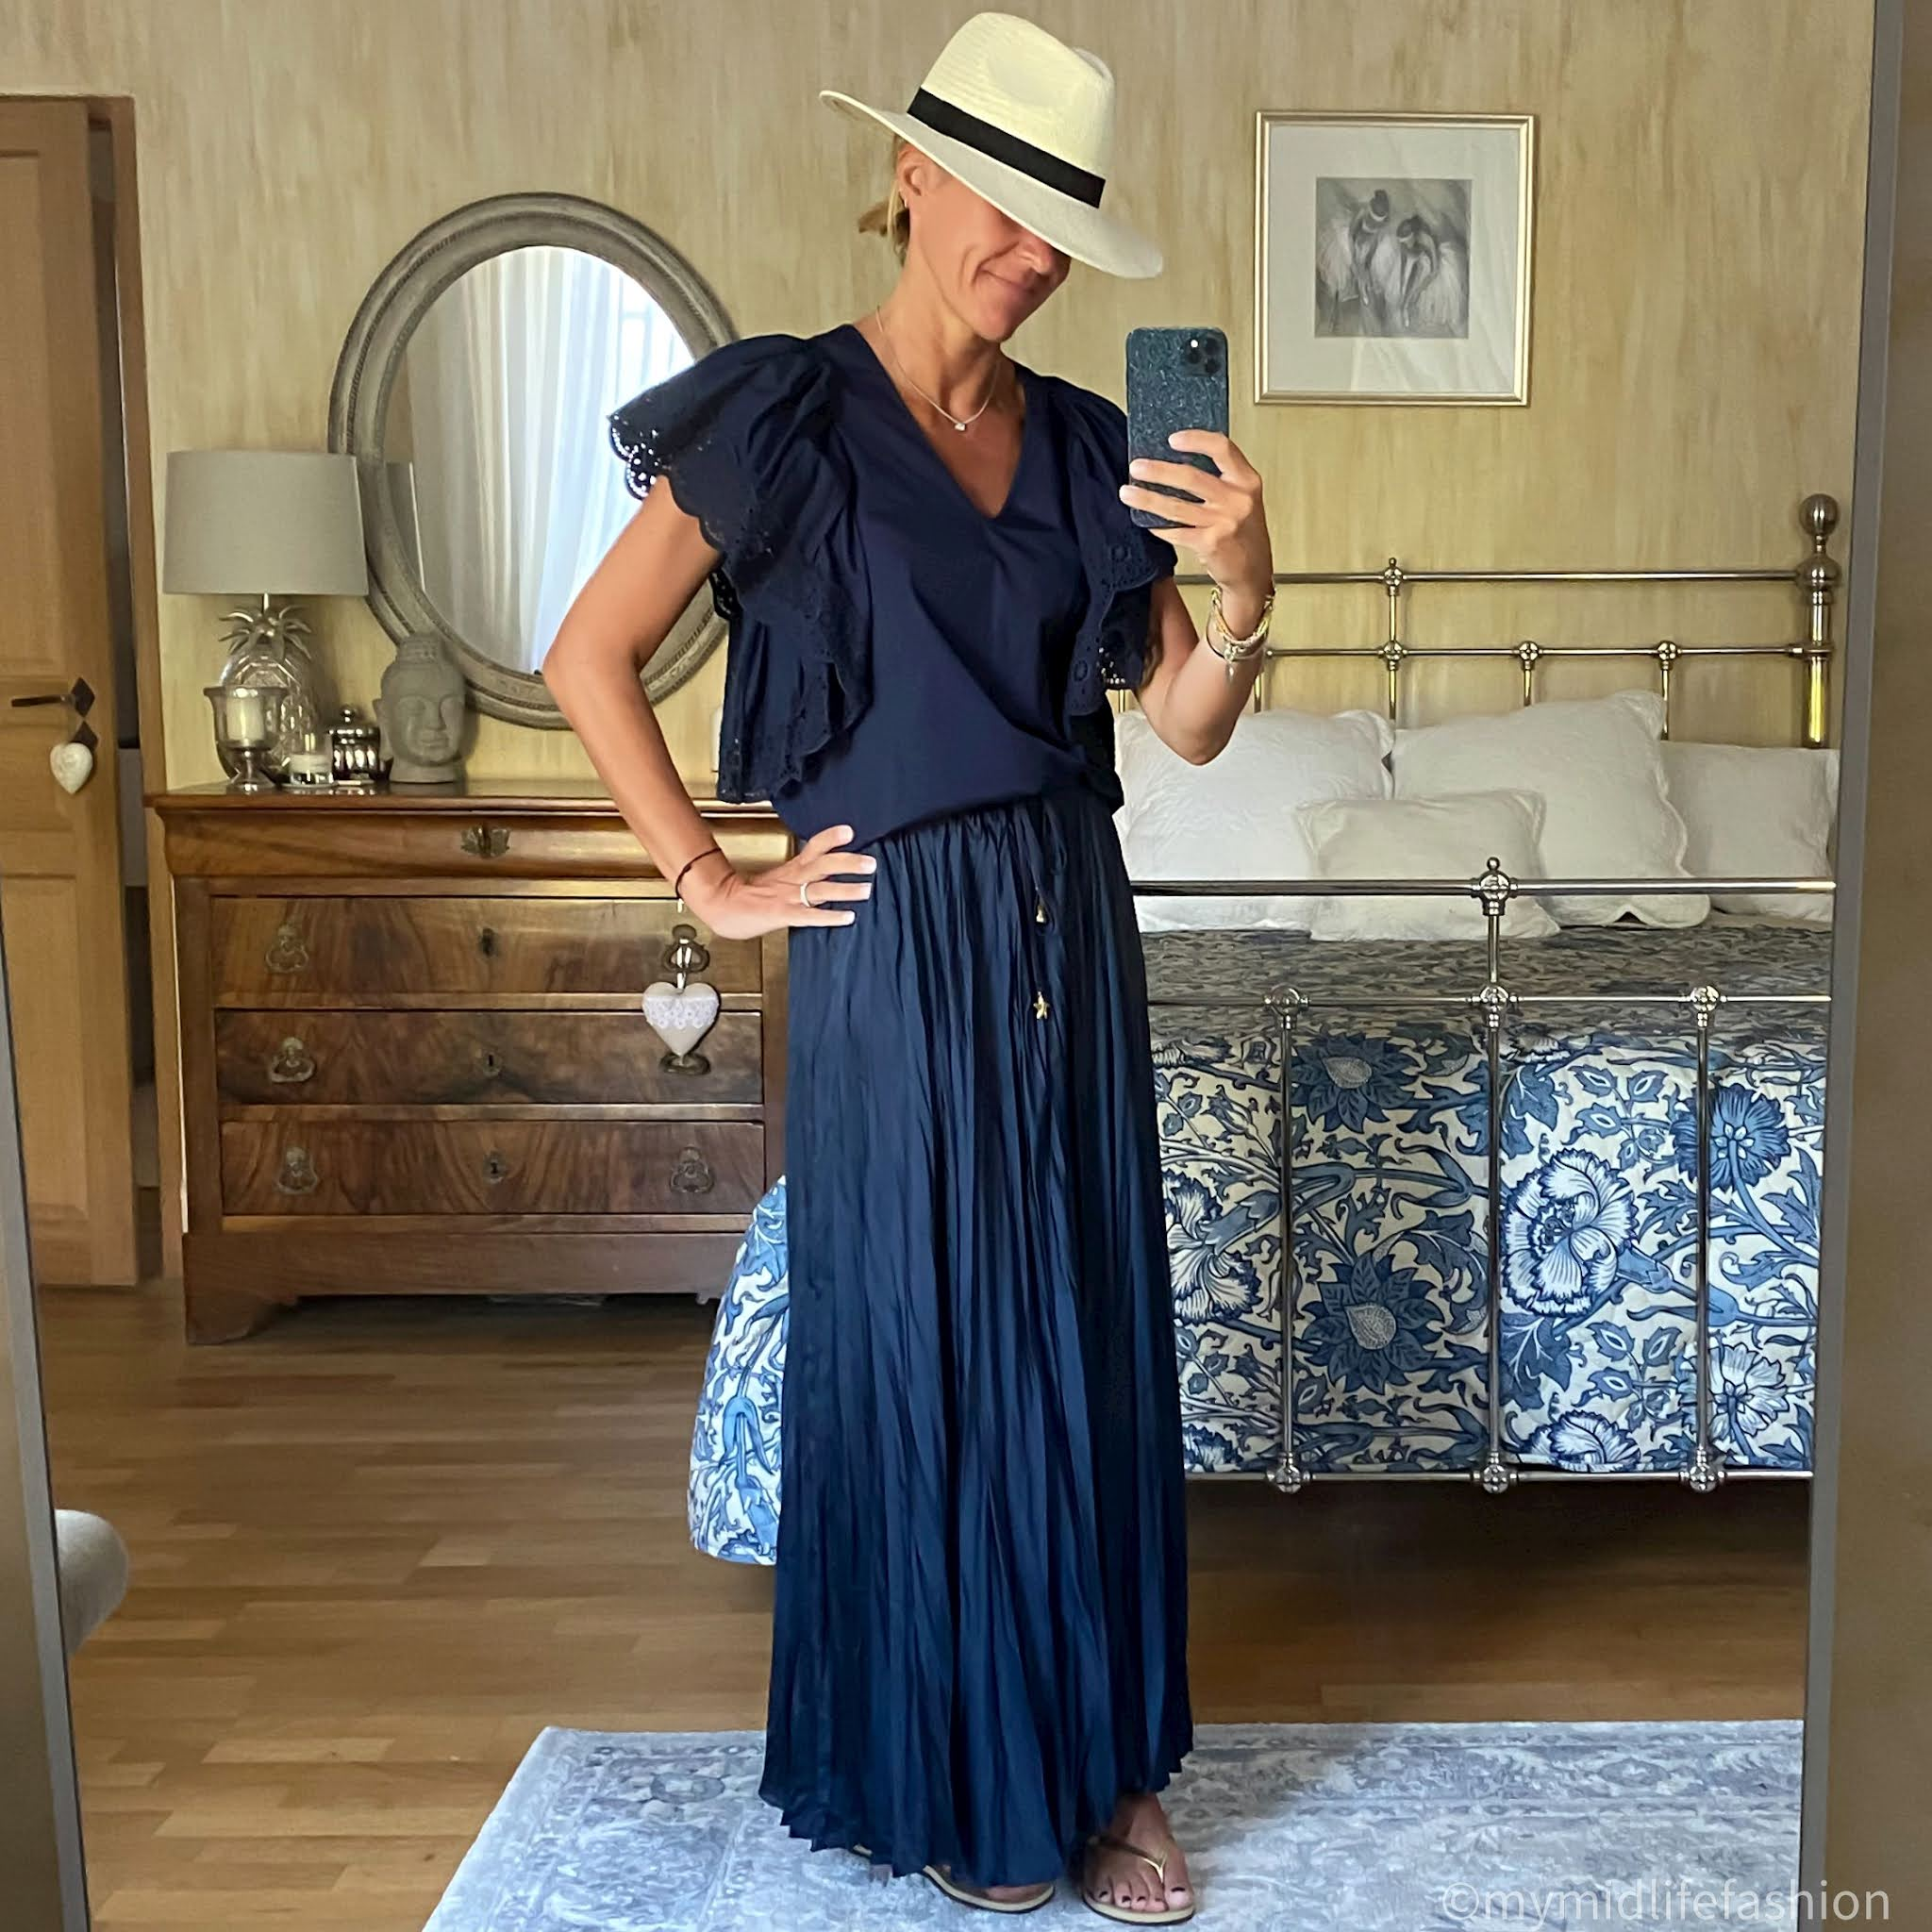 my midlife fashion, zara wrinkled satin effect skirt, zara Panama hat, see by Chloe broderie anglais frill sleeve top, havaianas slim fit gold metallic flip flops